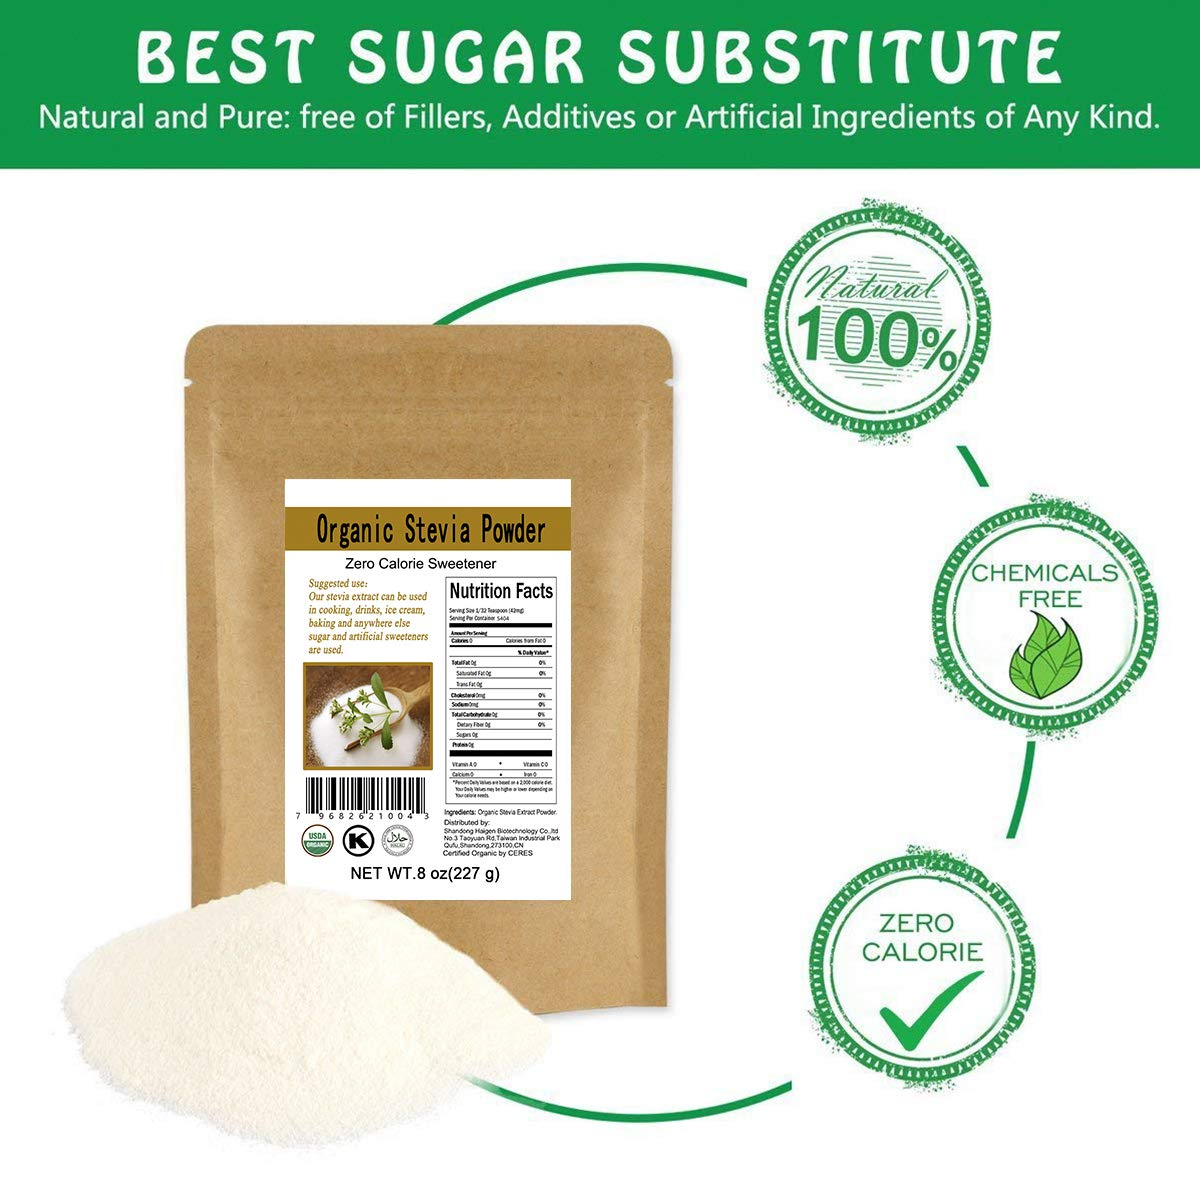 CCnature Organic Stevia Powder Extract Natural Sweetener Zero Calorie Sugar Substitute 8oz by CCnature (Image #2)